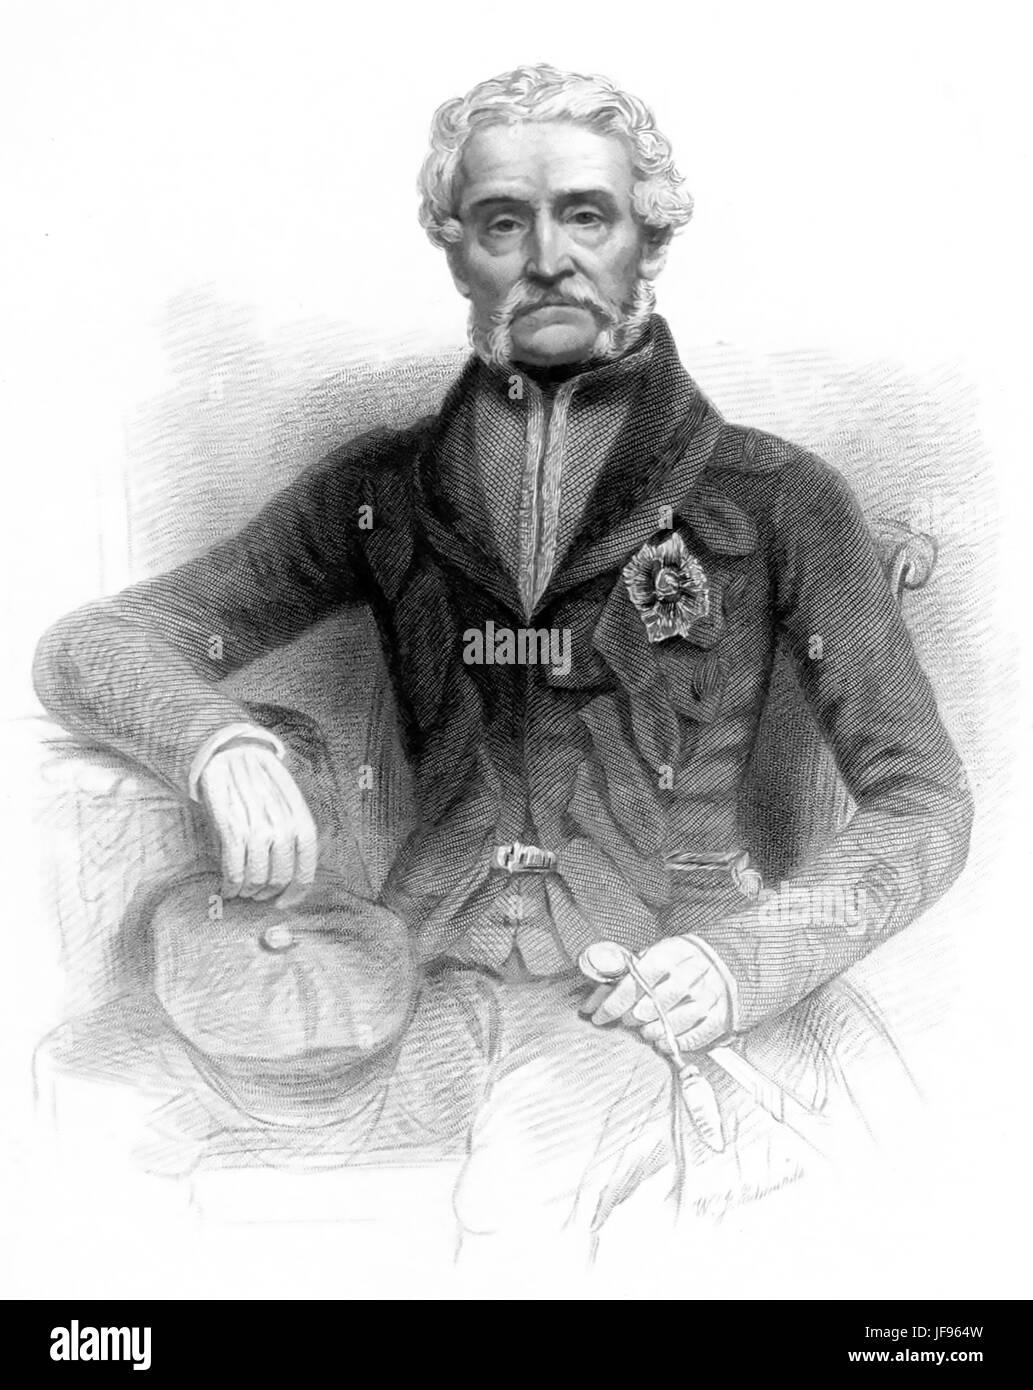 HARRY SMITH (1787-1860) British Army officer - Stock Image